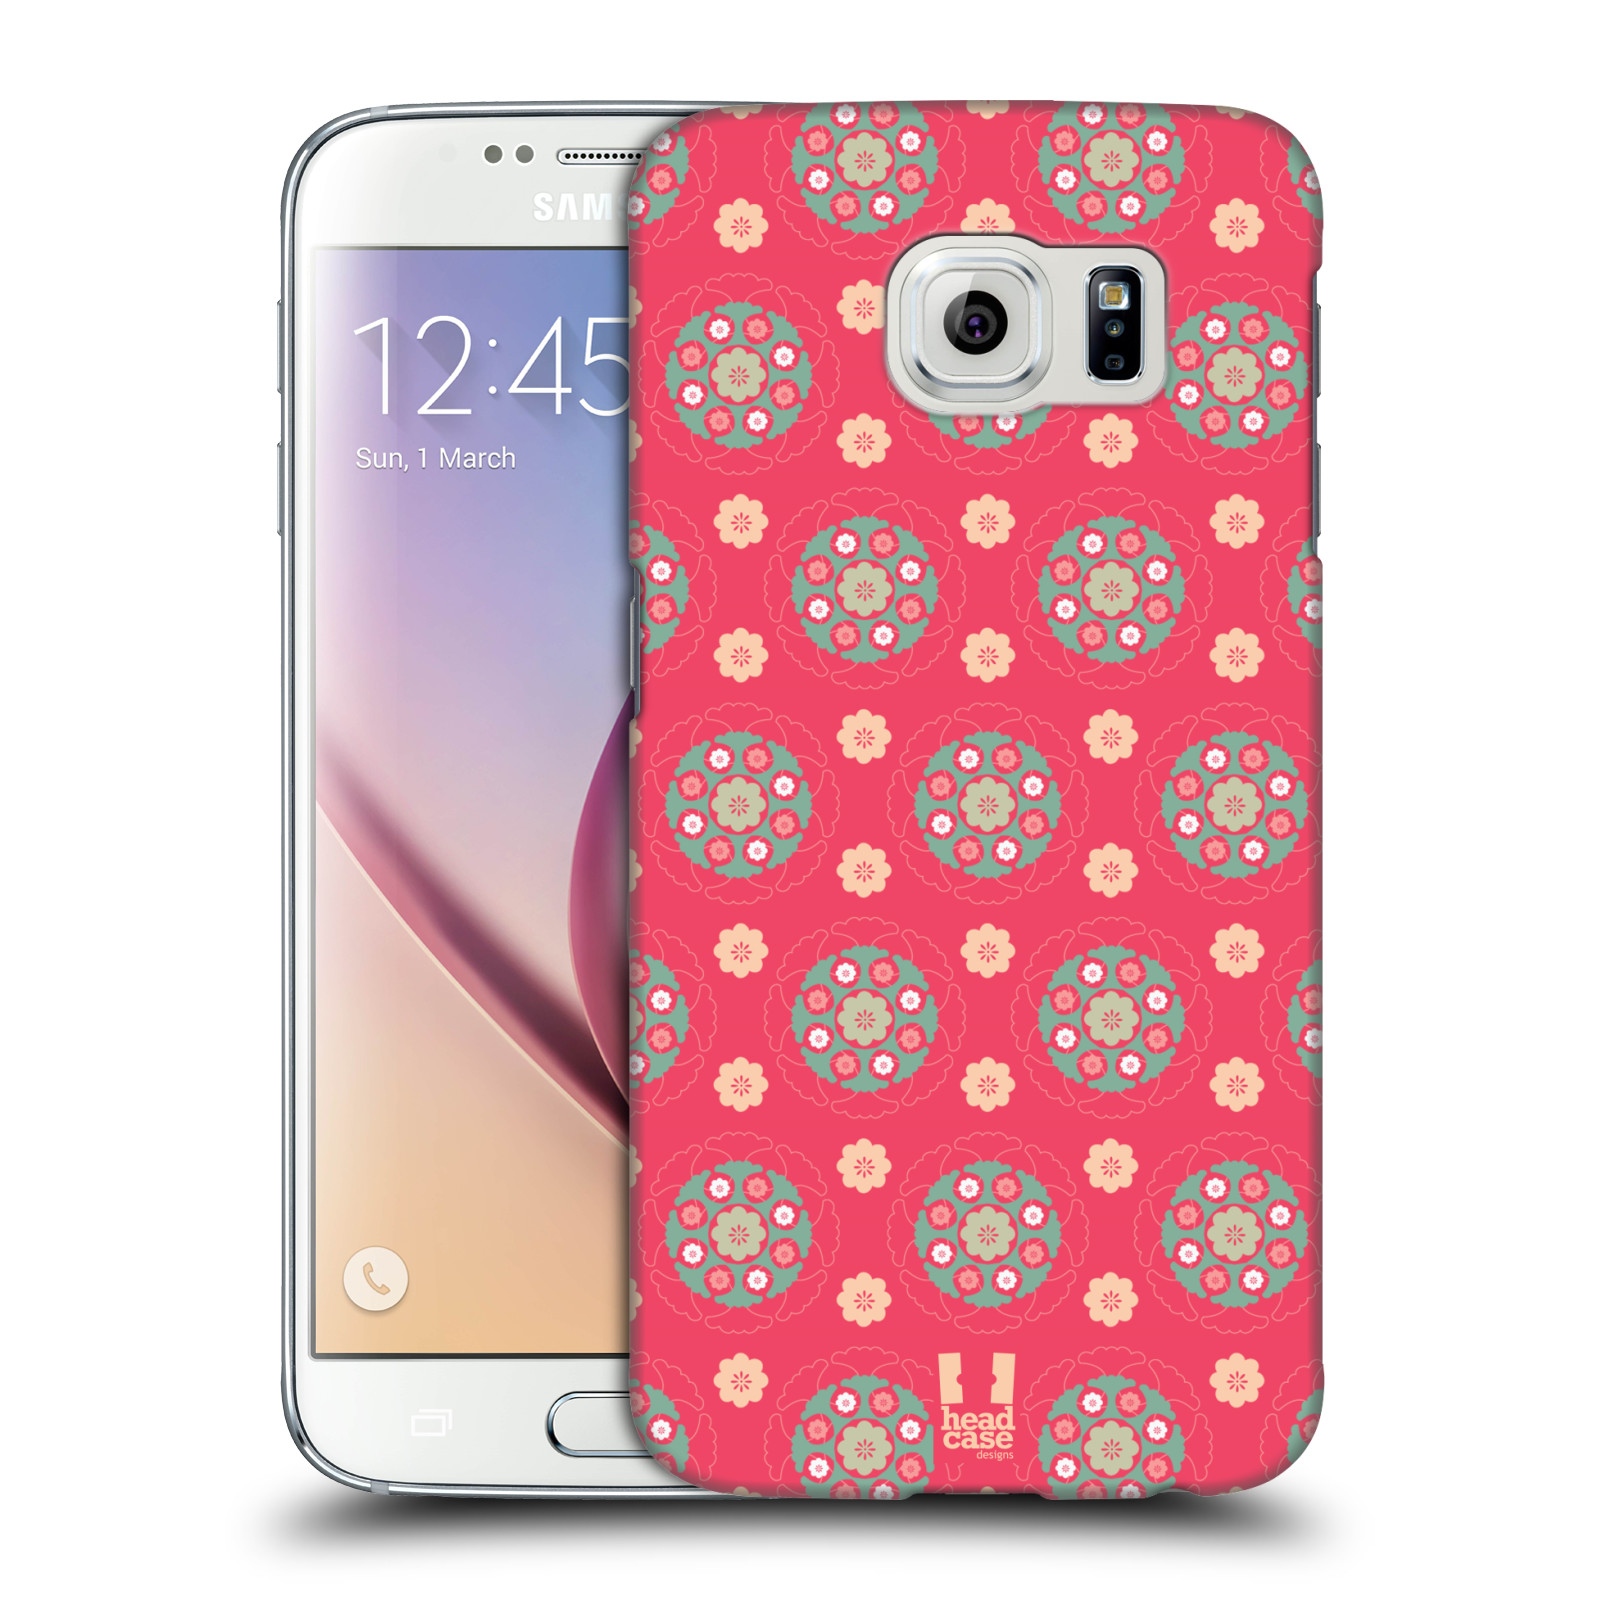 Head case designs bohemian patterns hard back case for for Cell phone cover design ideas